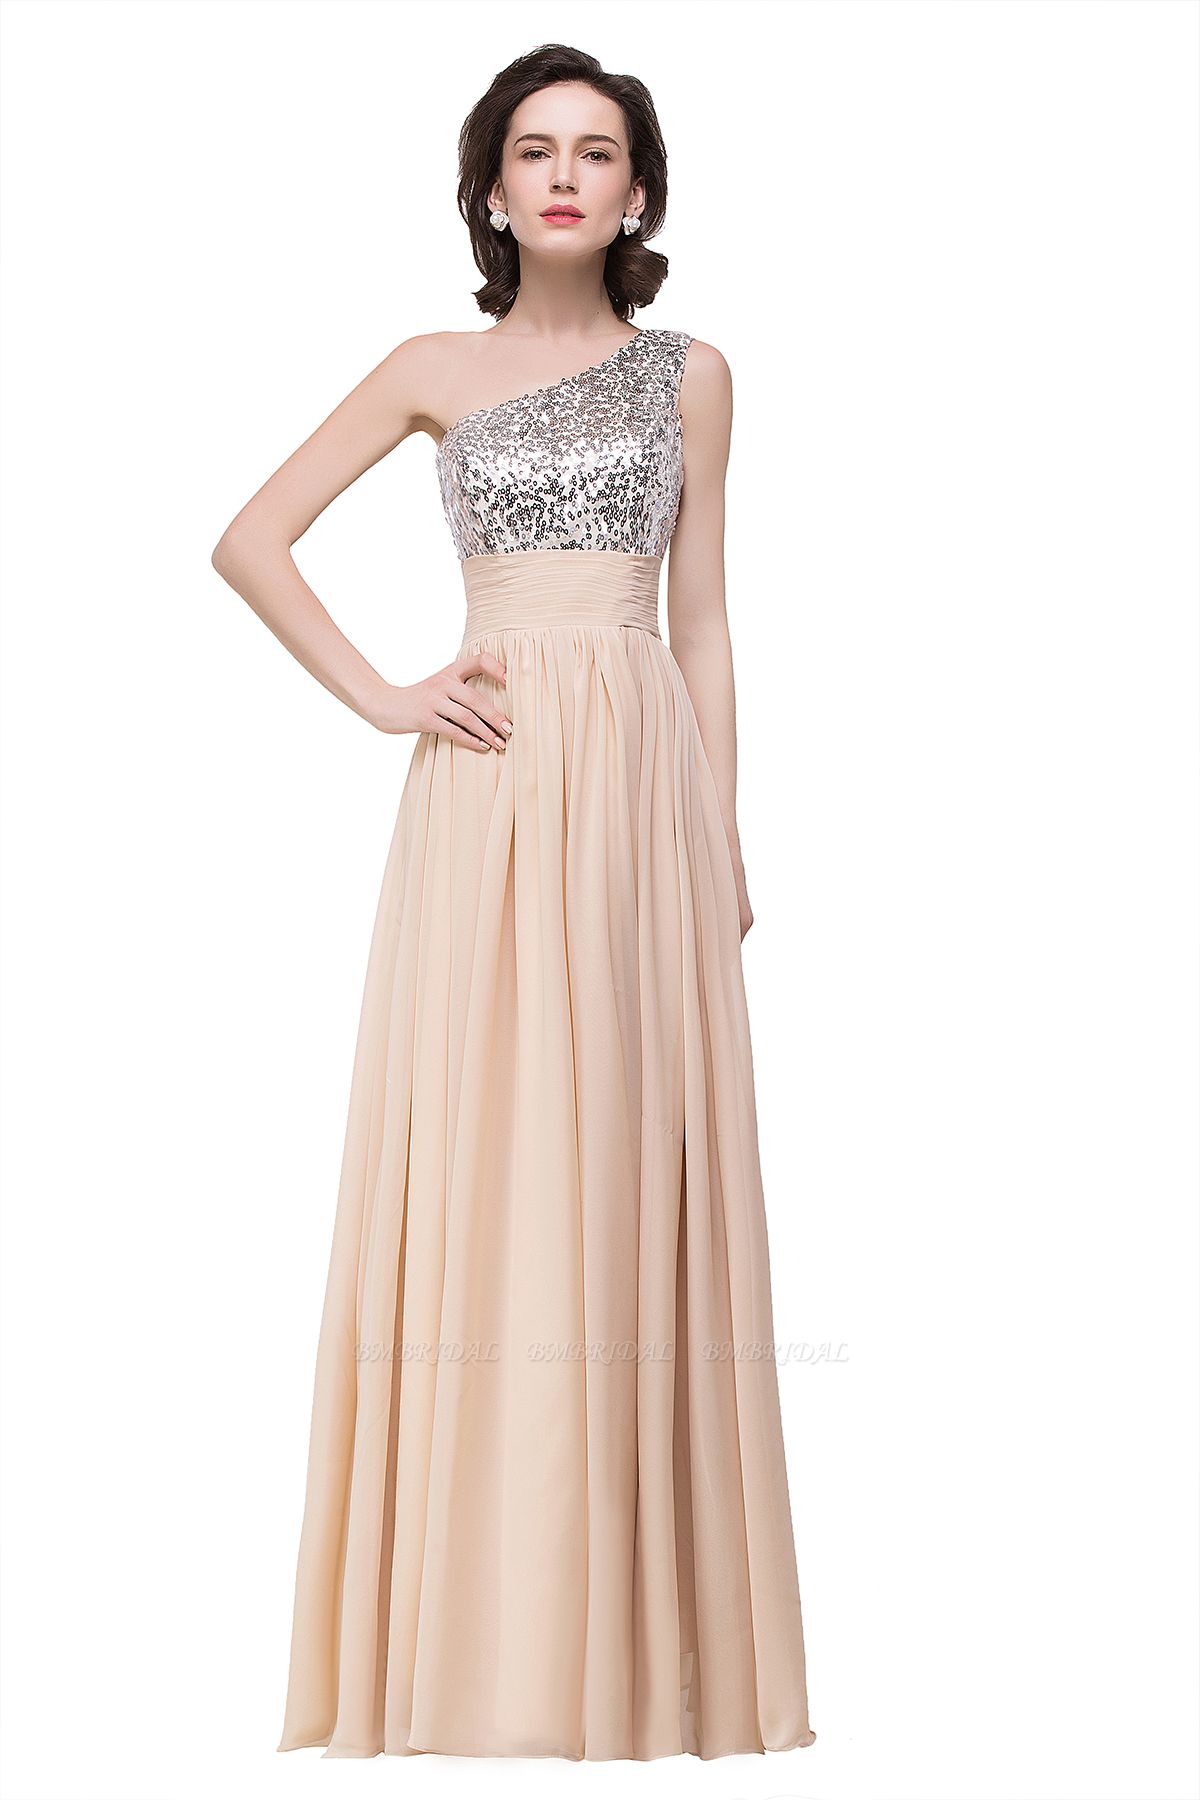 BMbridal A-line Floor-length Chiffon Evening Dress with Sequined